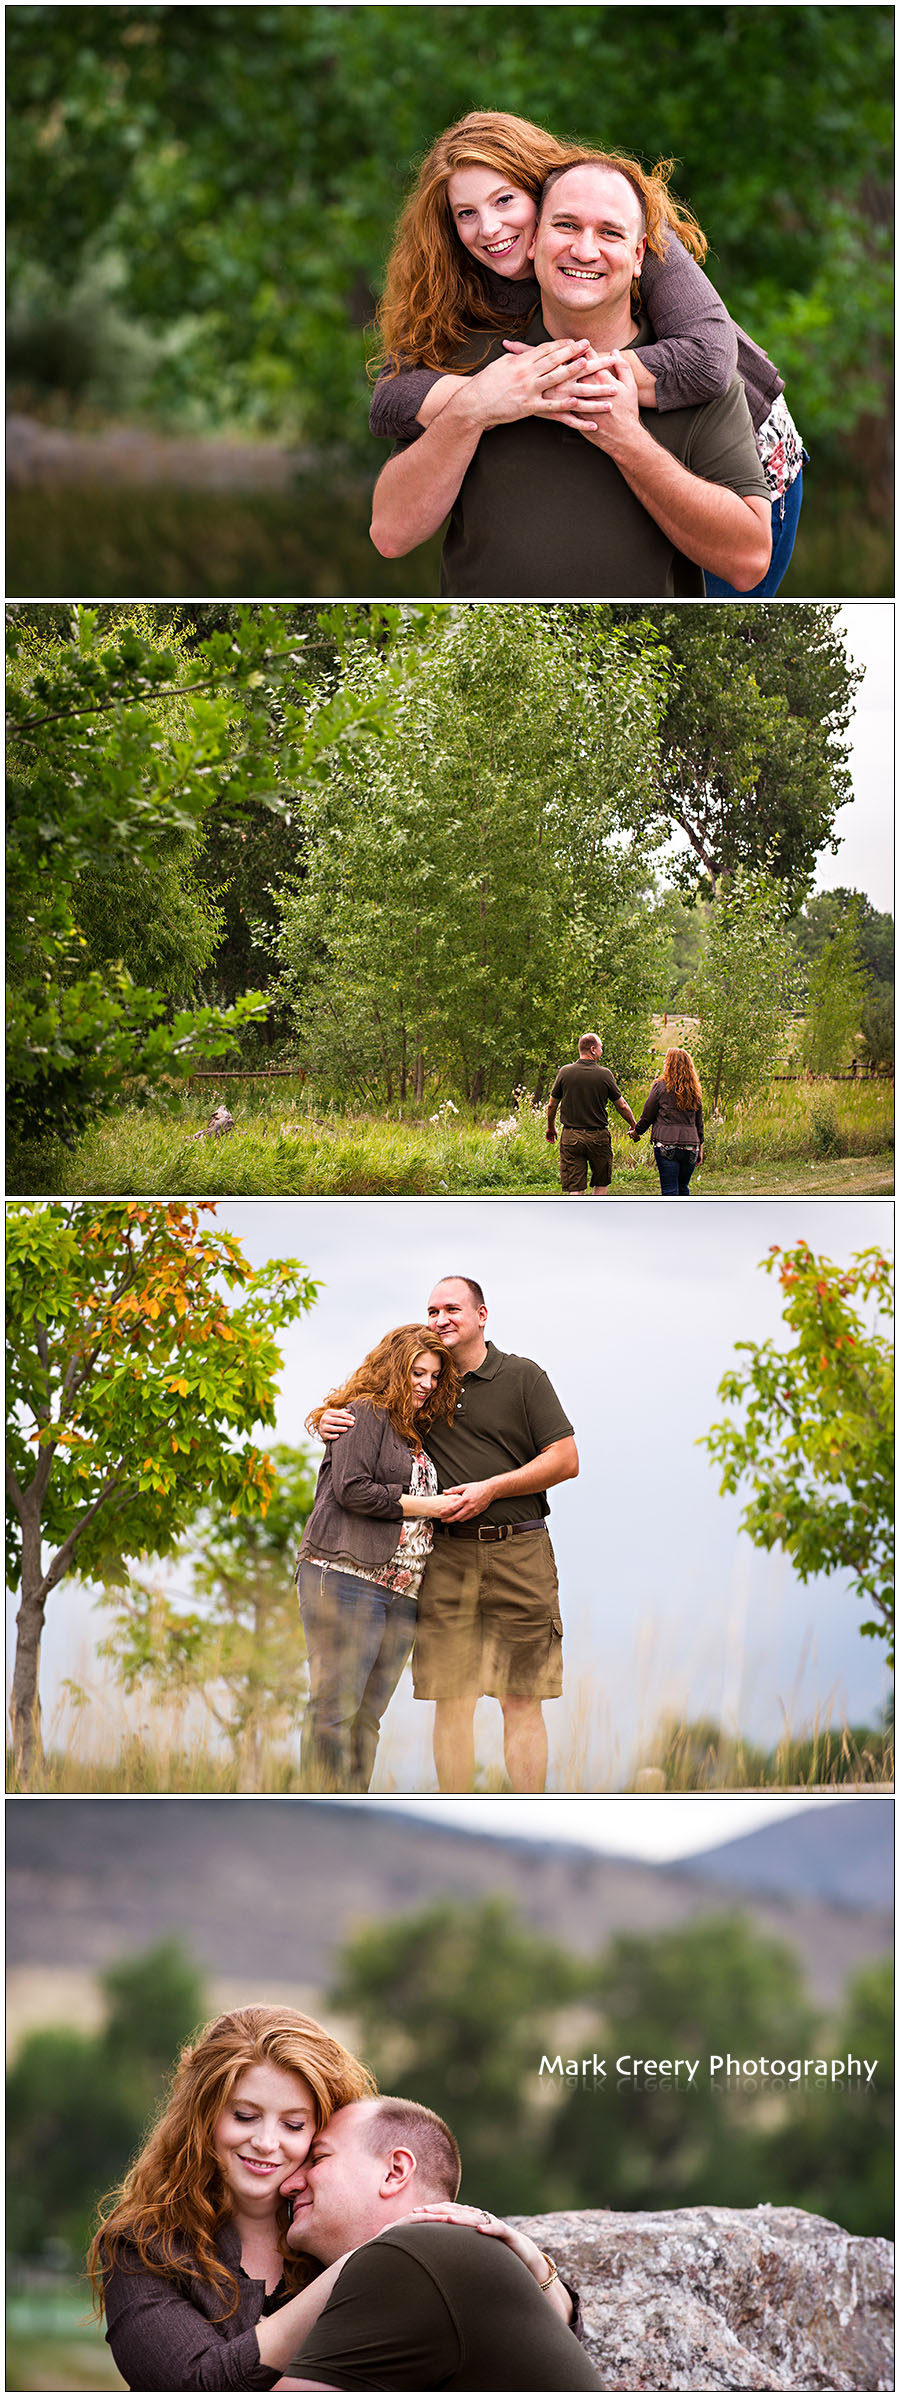 Spring Canyon Park engagement photos